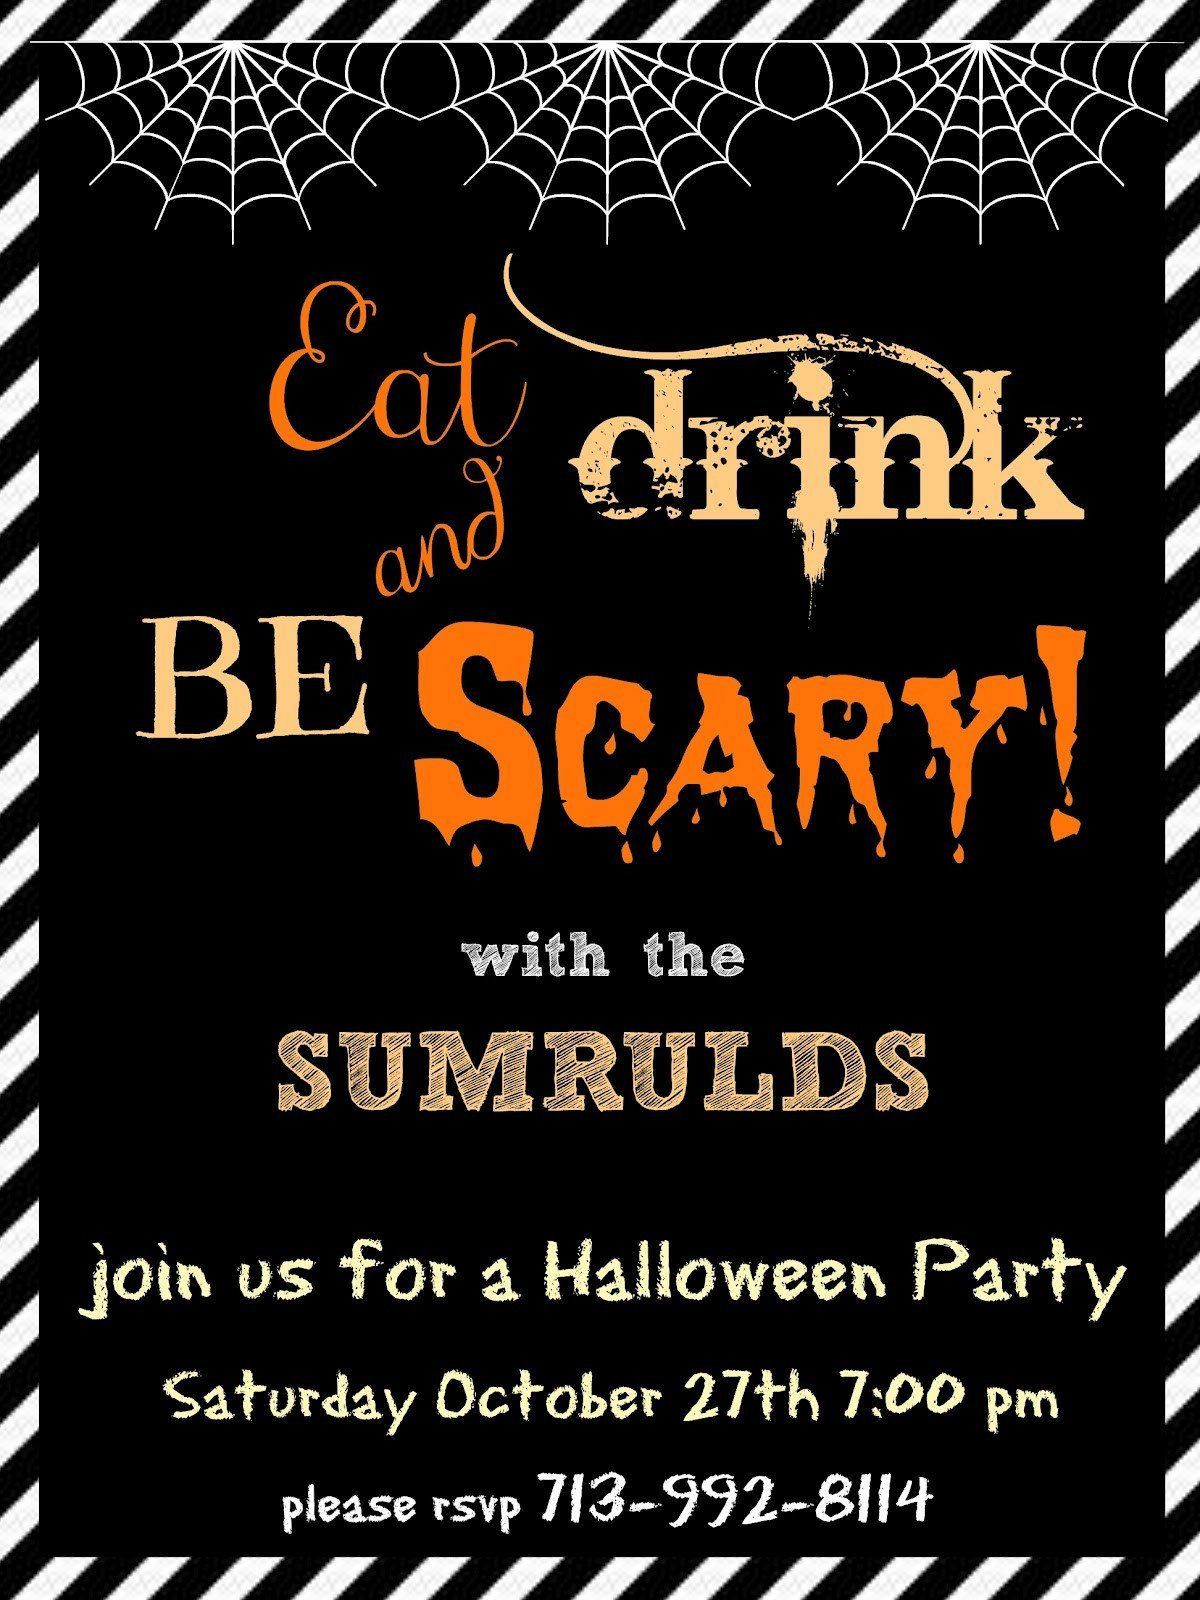 004 Phenomenal Halloween Party Invite Template High Def  Spooky Invitation Free Printable Birthday DownloadFull